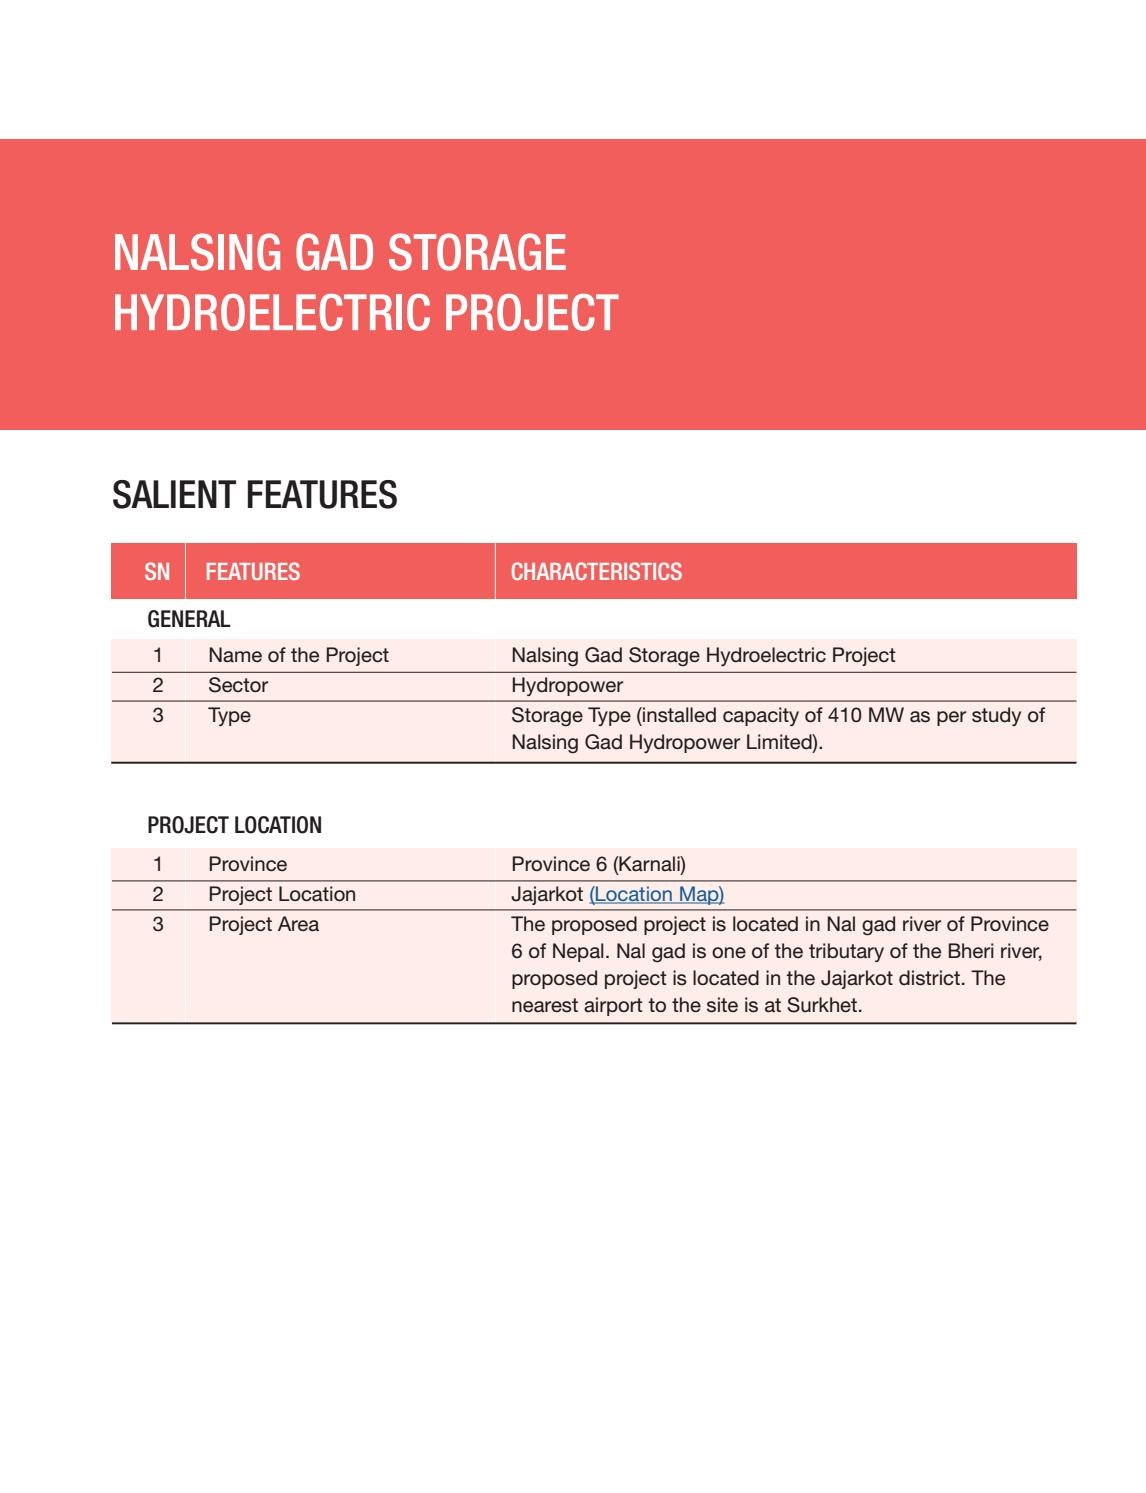 Nalsing Gad Storage Hydroelectric Project by Nepal